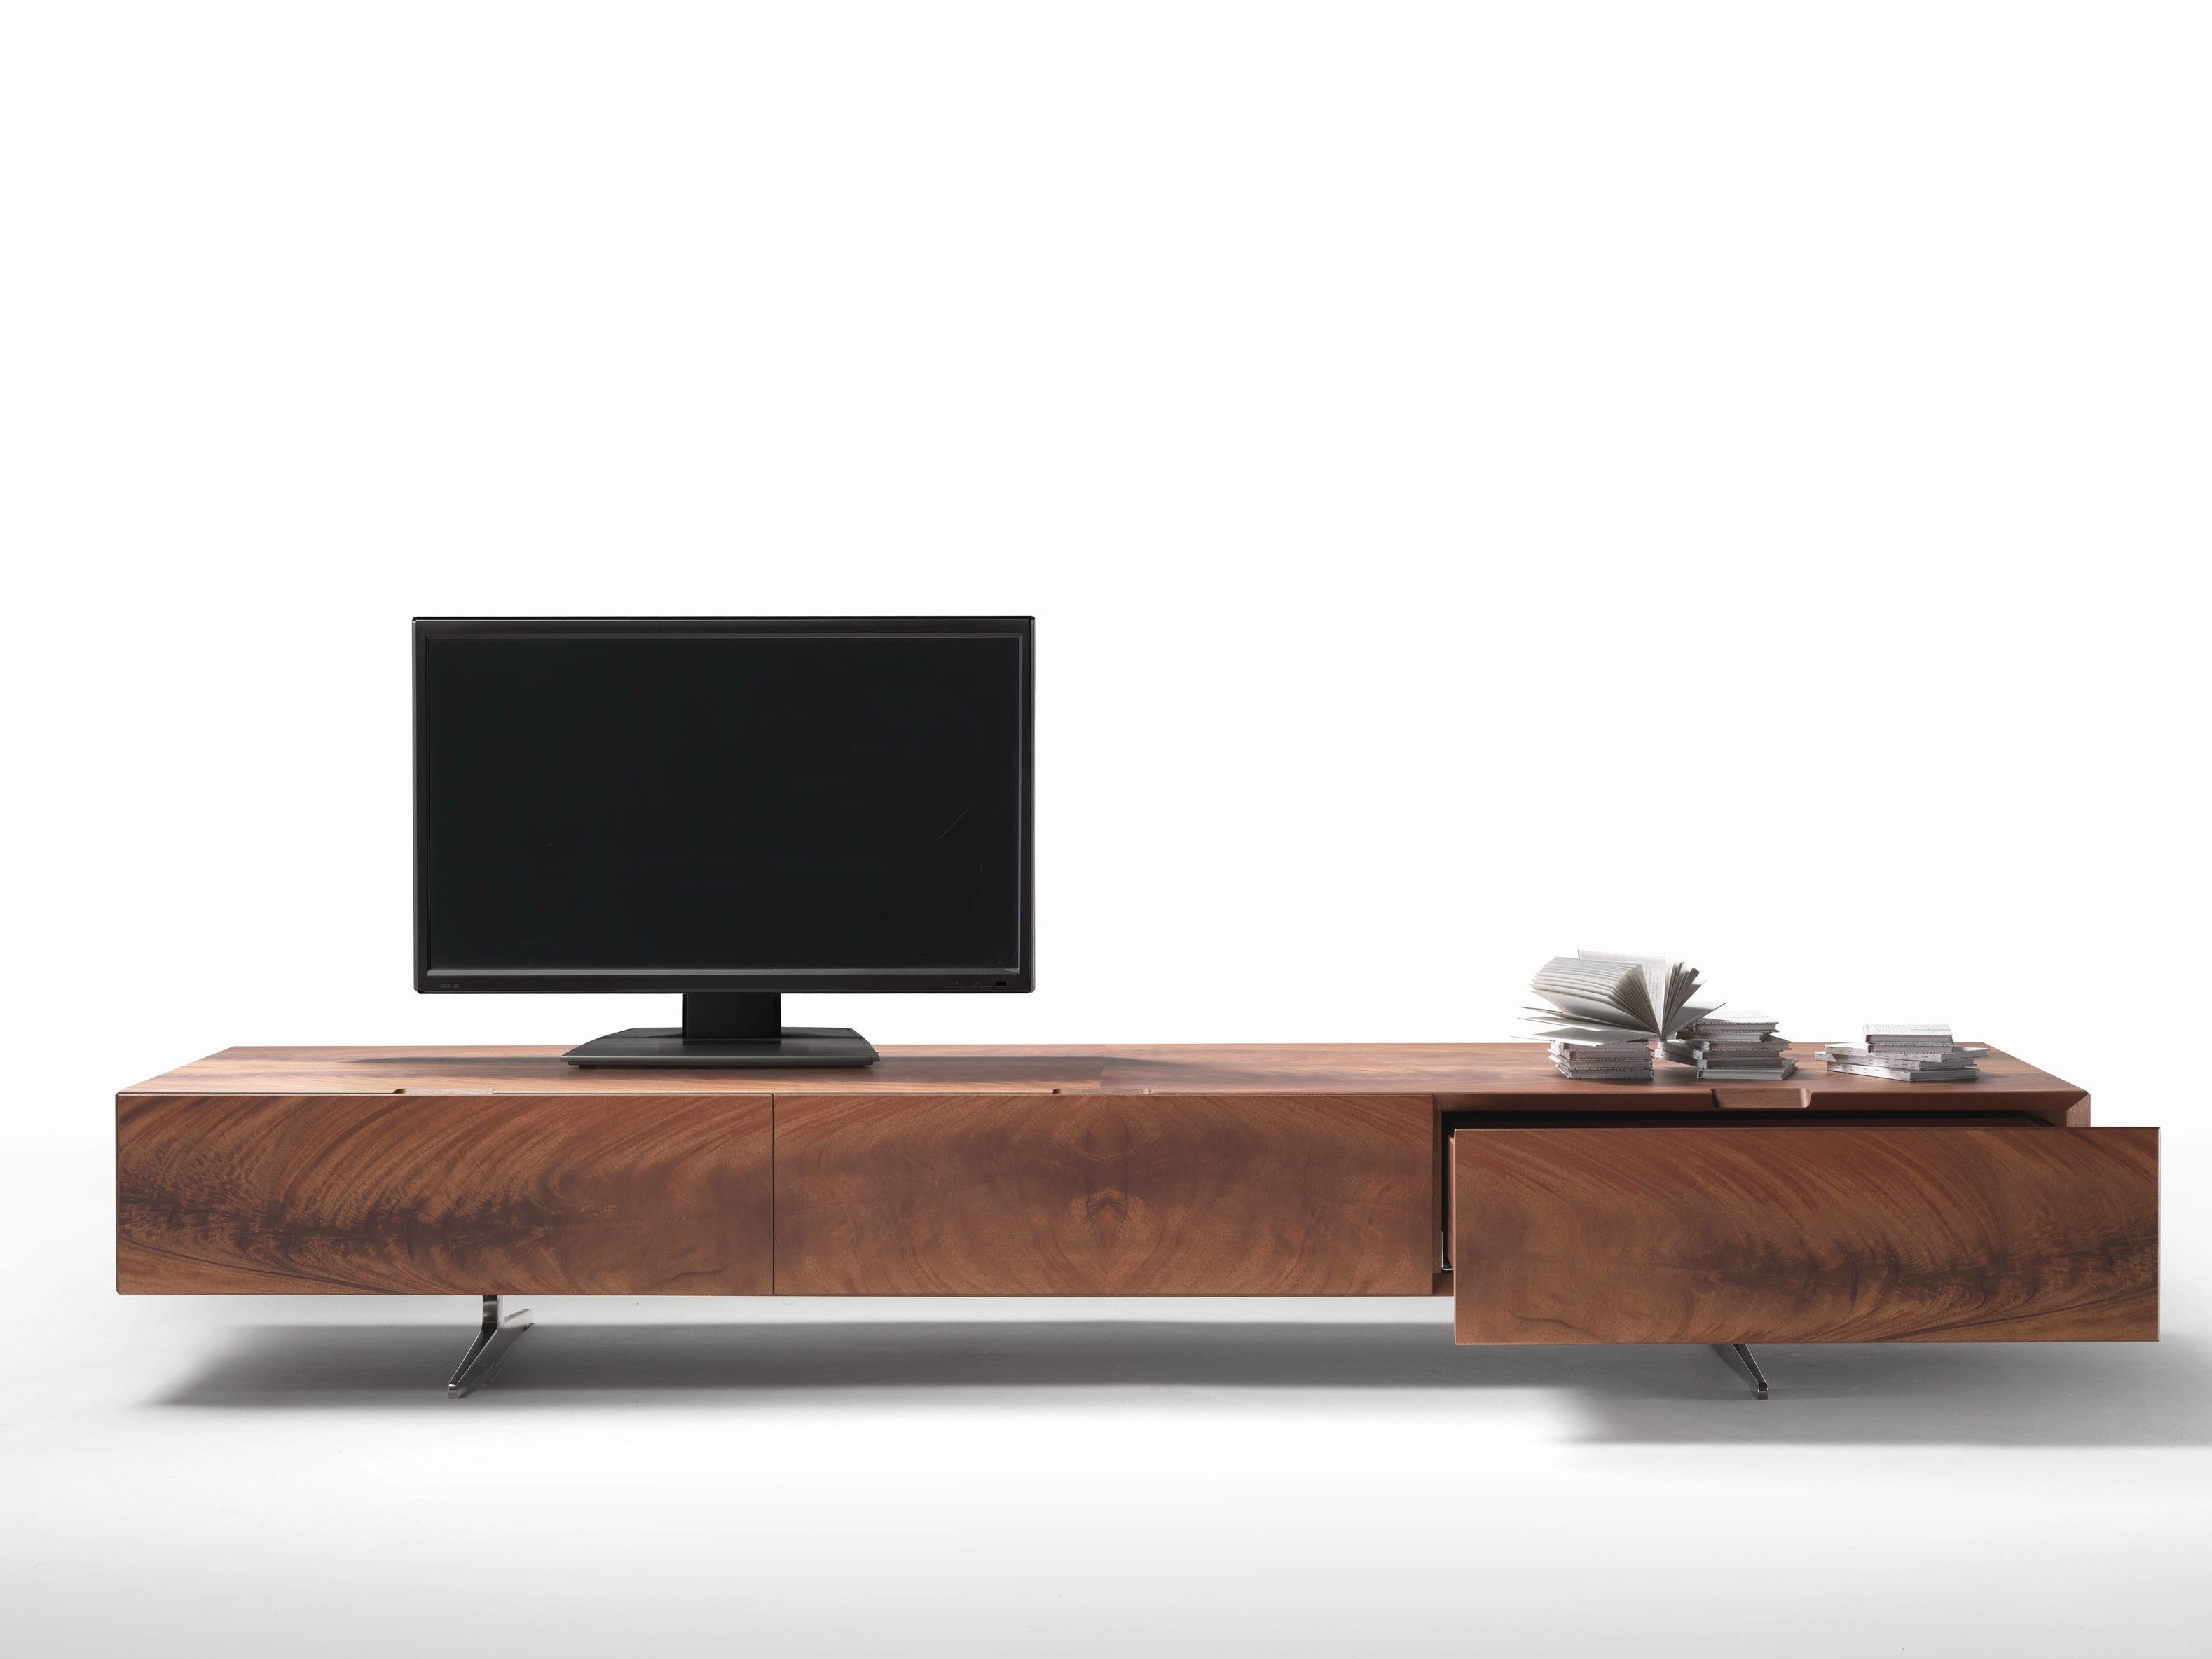 tolle design tv möbel lowboard - | deutsche in 2019 | tv